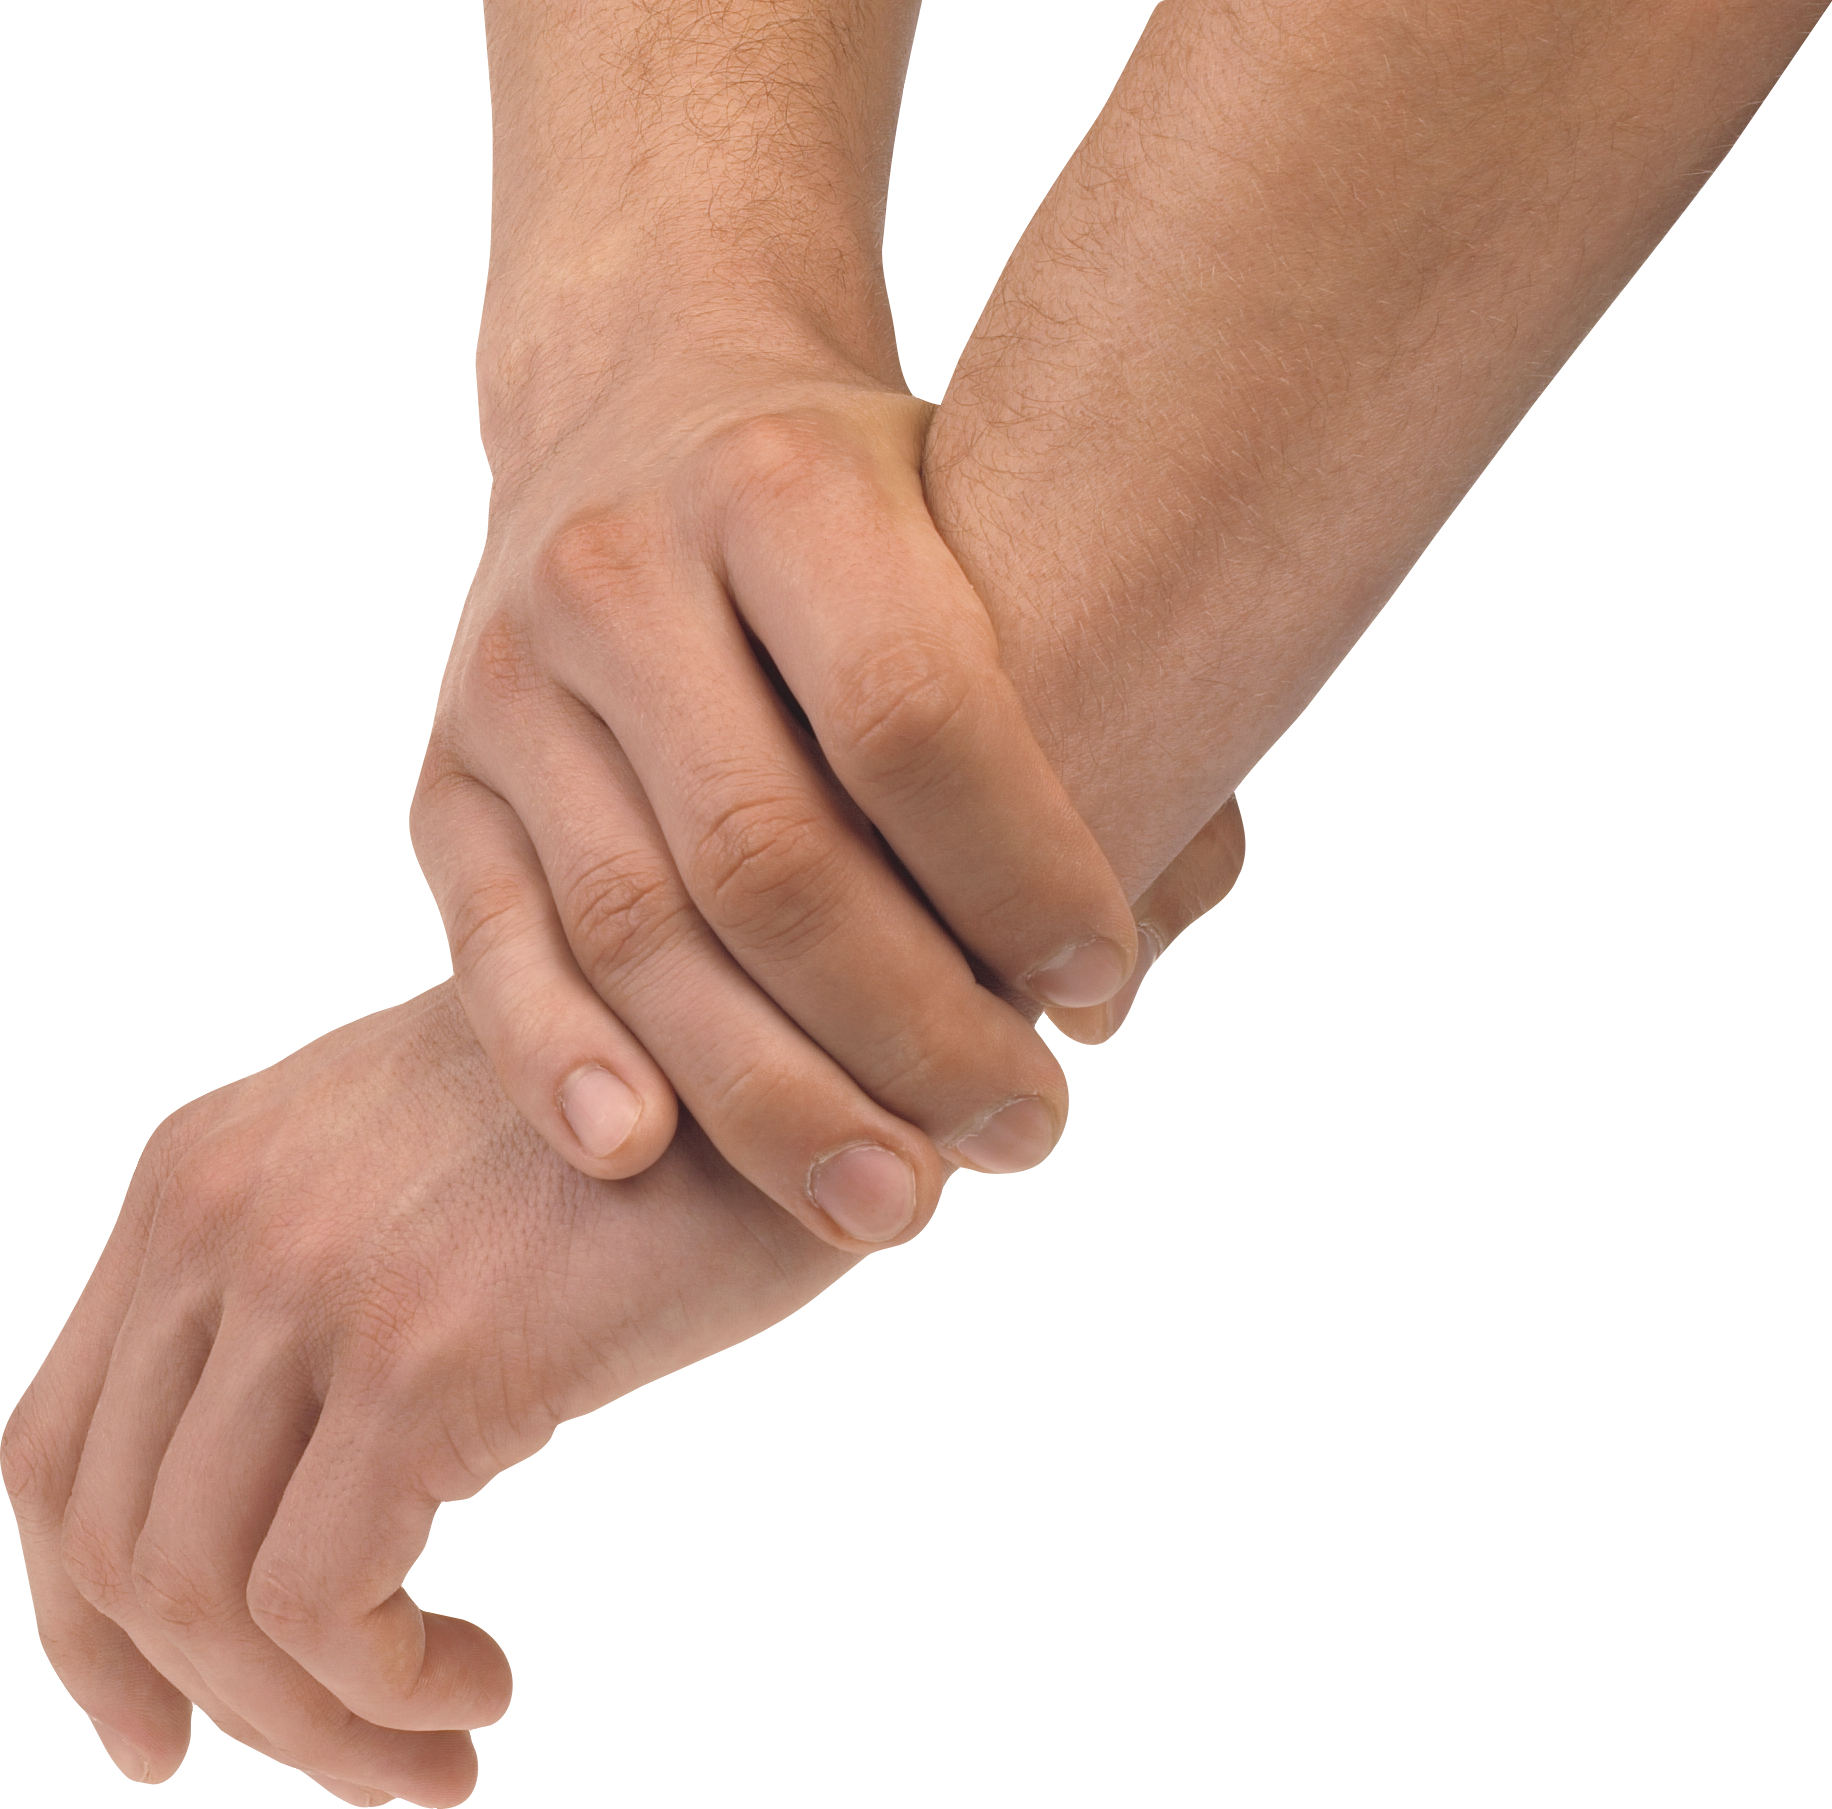 Hands Clipart image #44742